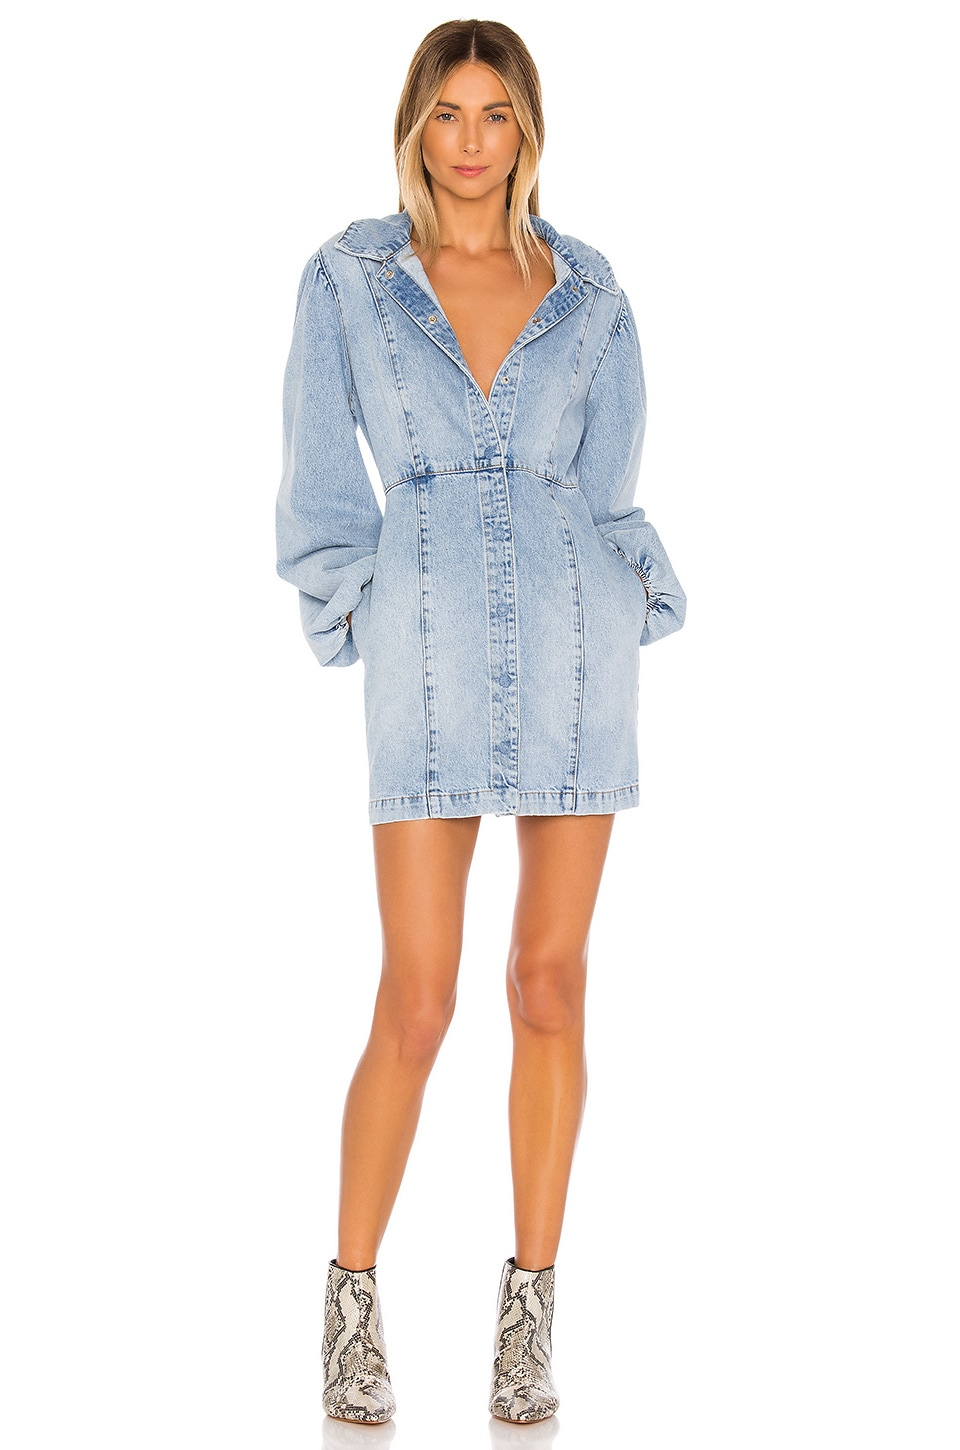 Free People Mia Denim Mini Dress in Indigo Blue